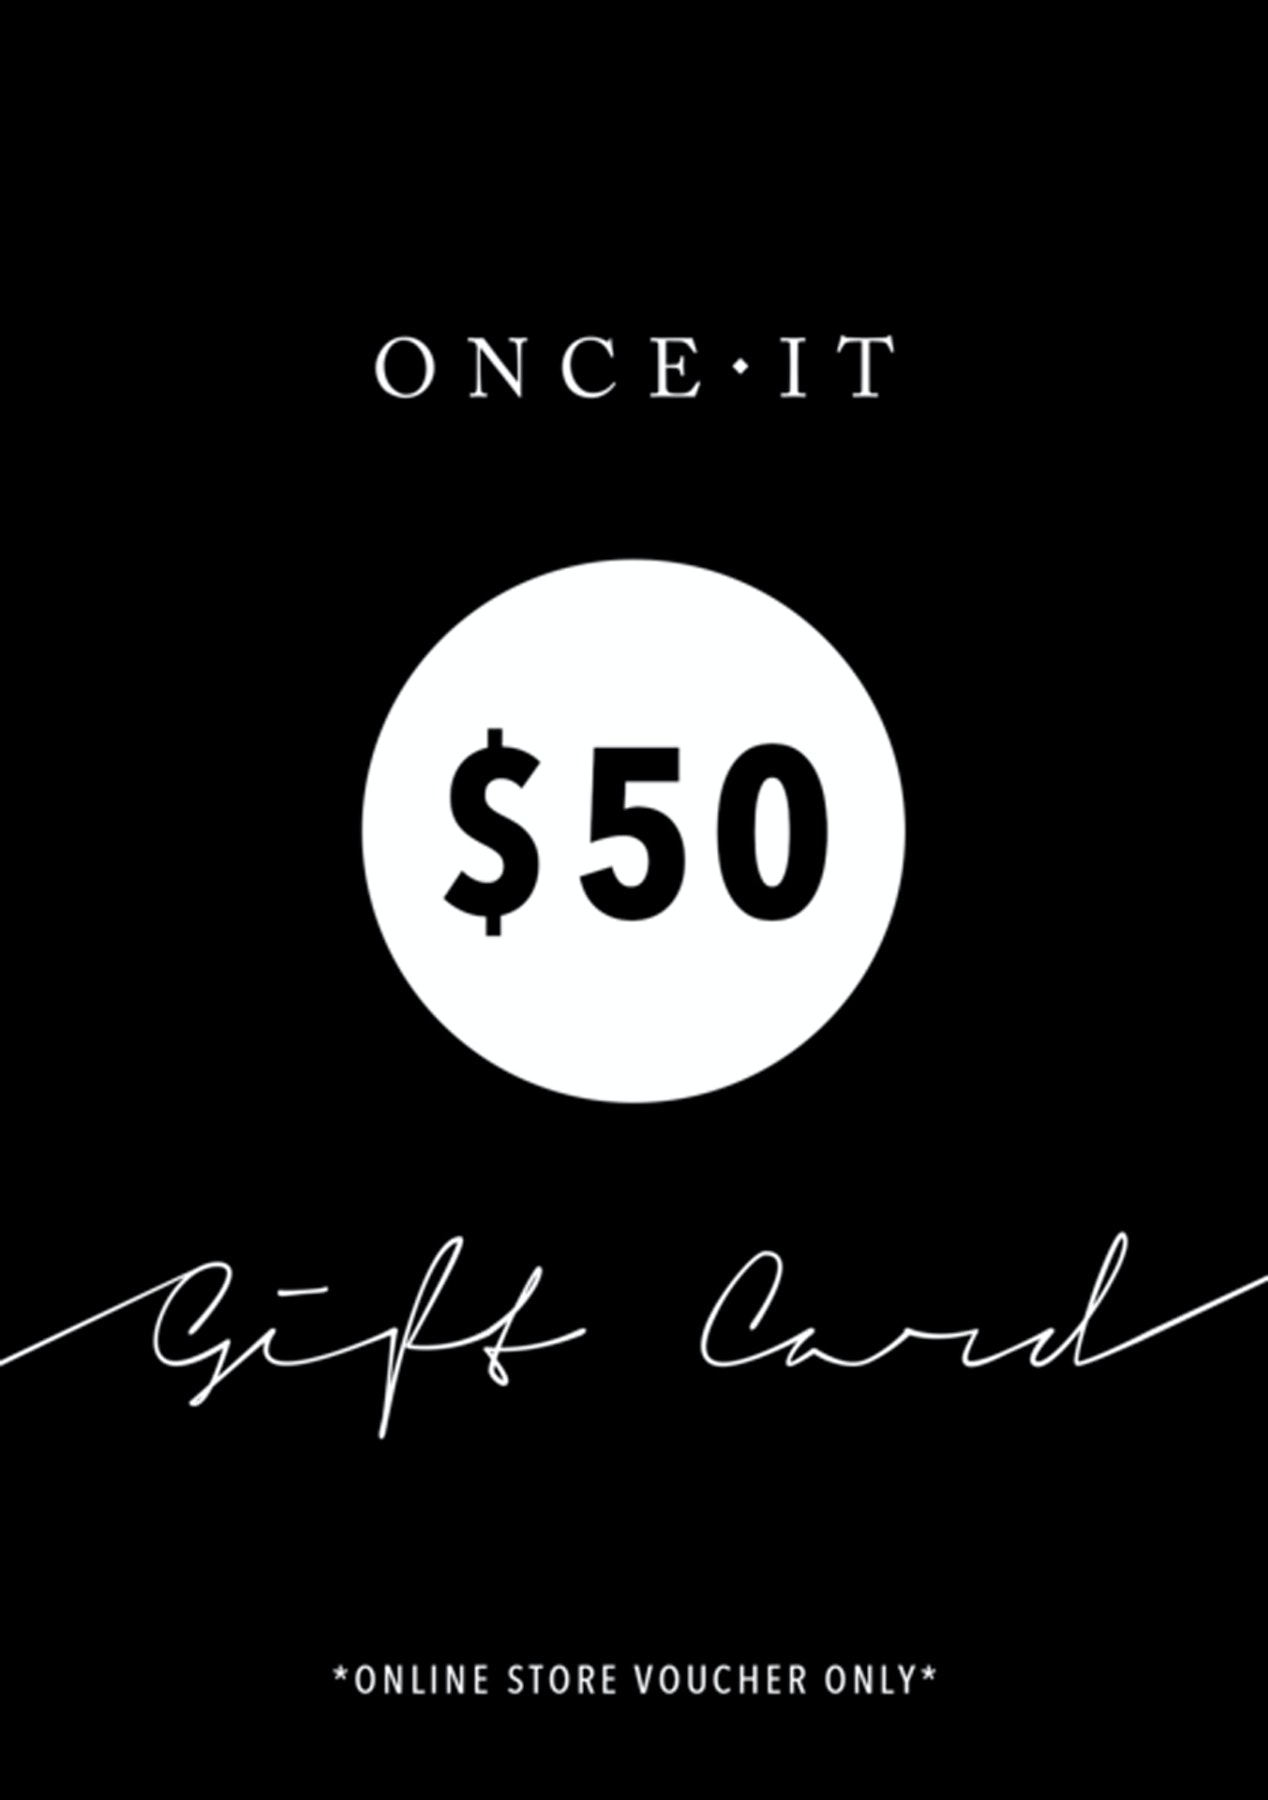 Onceit $50 Digital Gift Card